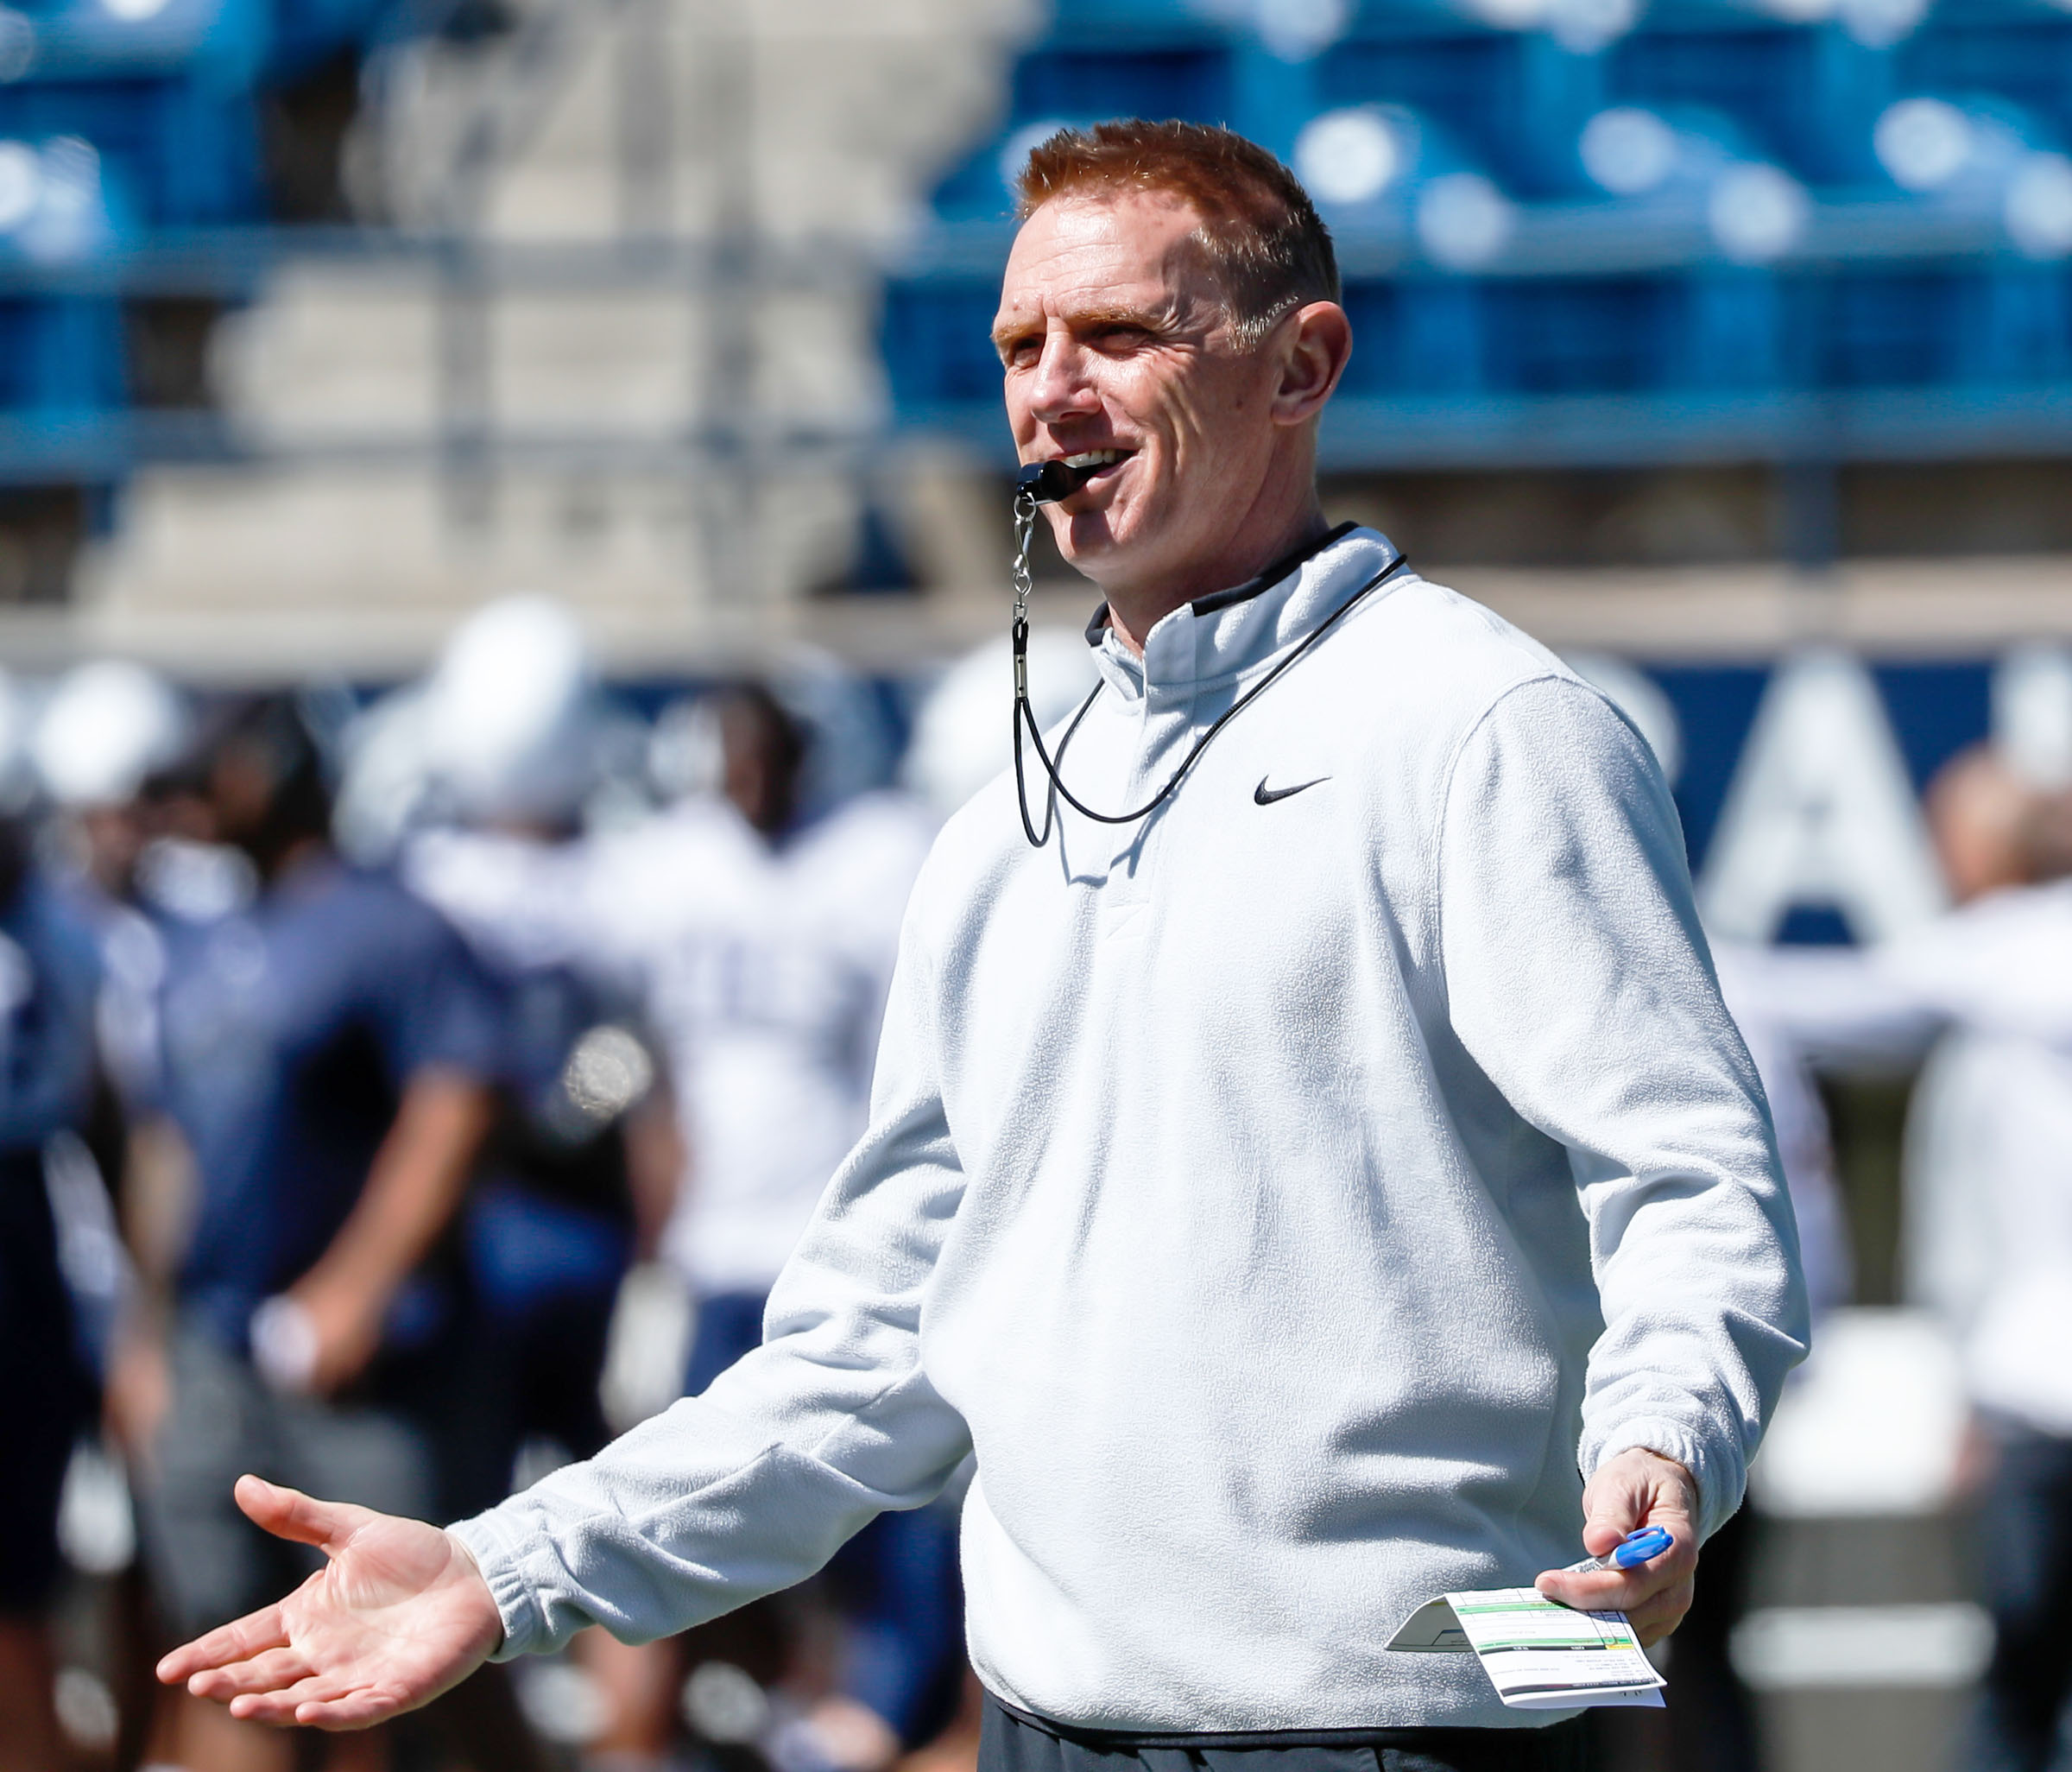 Blake Anderson coaches the USU football team during a spring football scrimmage at Maverik Stadium in April 2021.